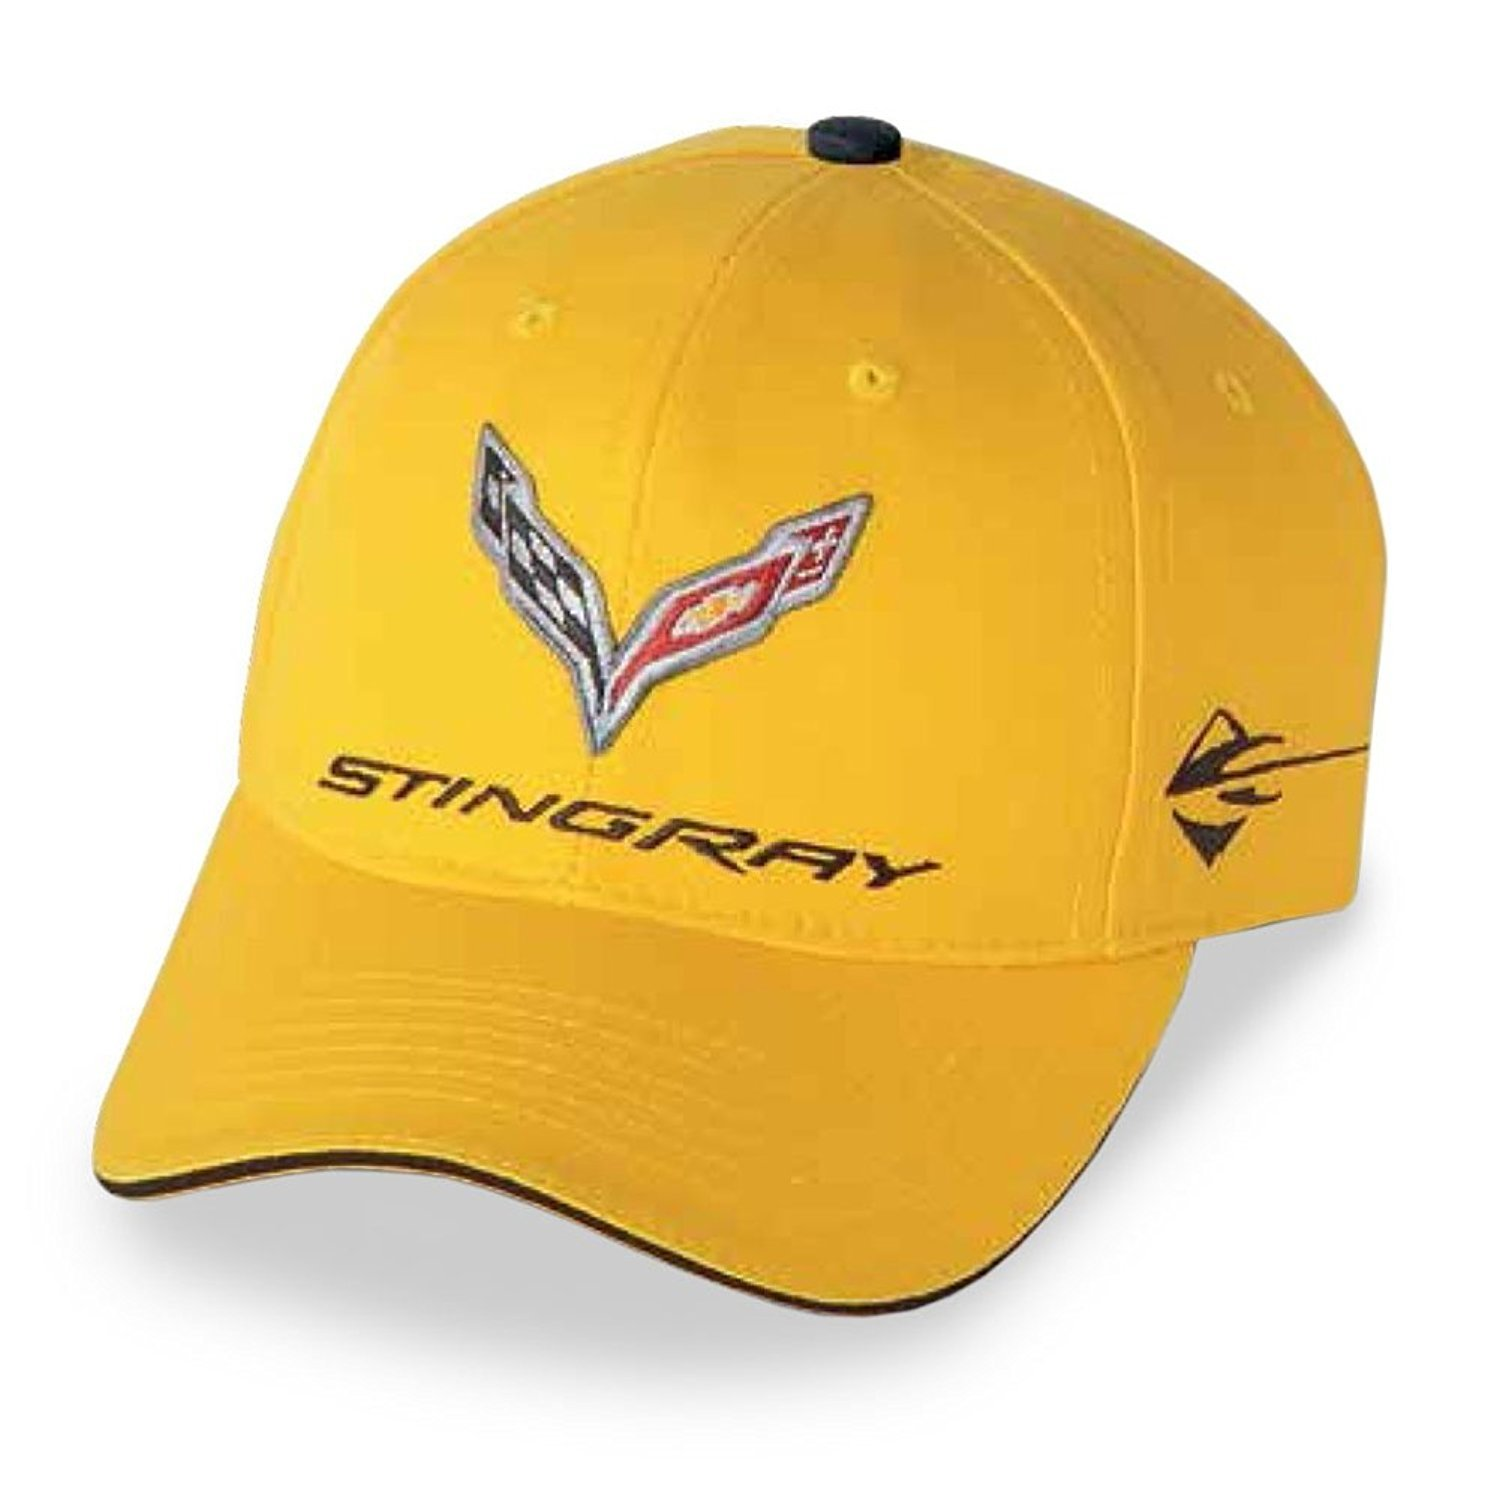 3568190ee577b C7 Corvette Stingray Car Color Matching Hat Cap - Embroidered (Laguna Blue)  - Walmart.com